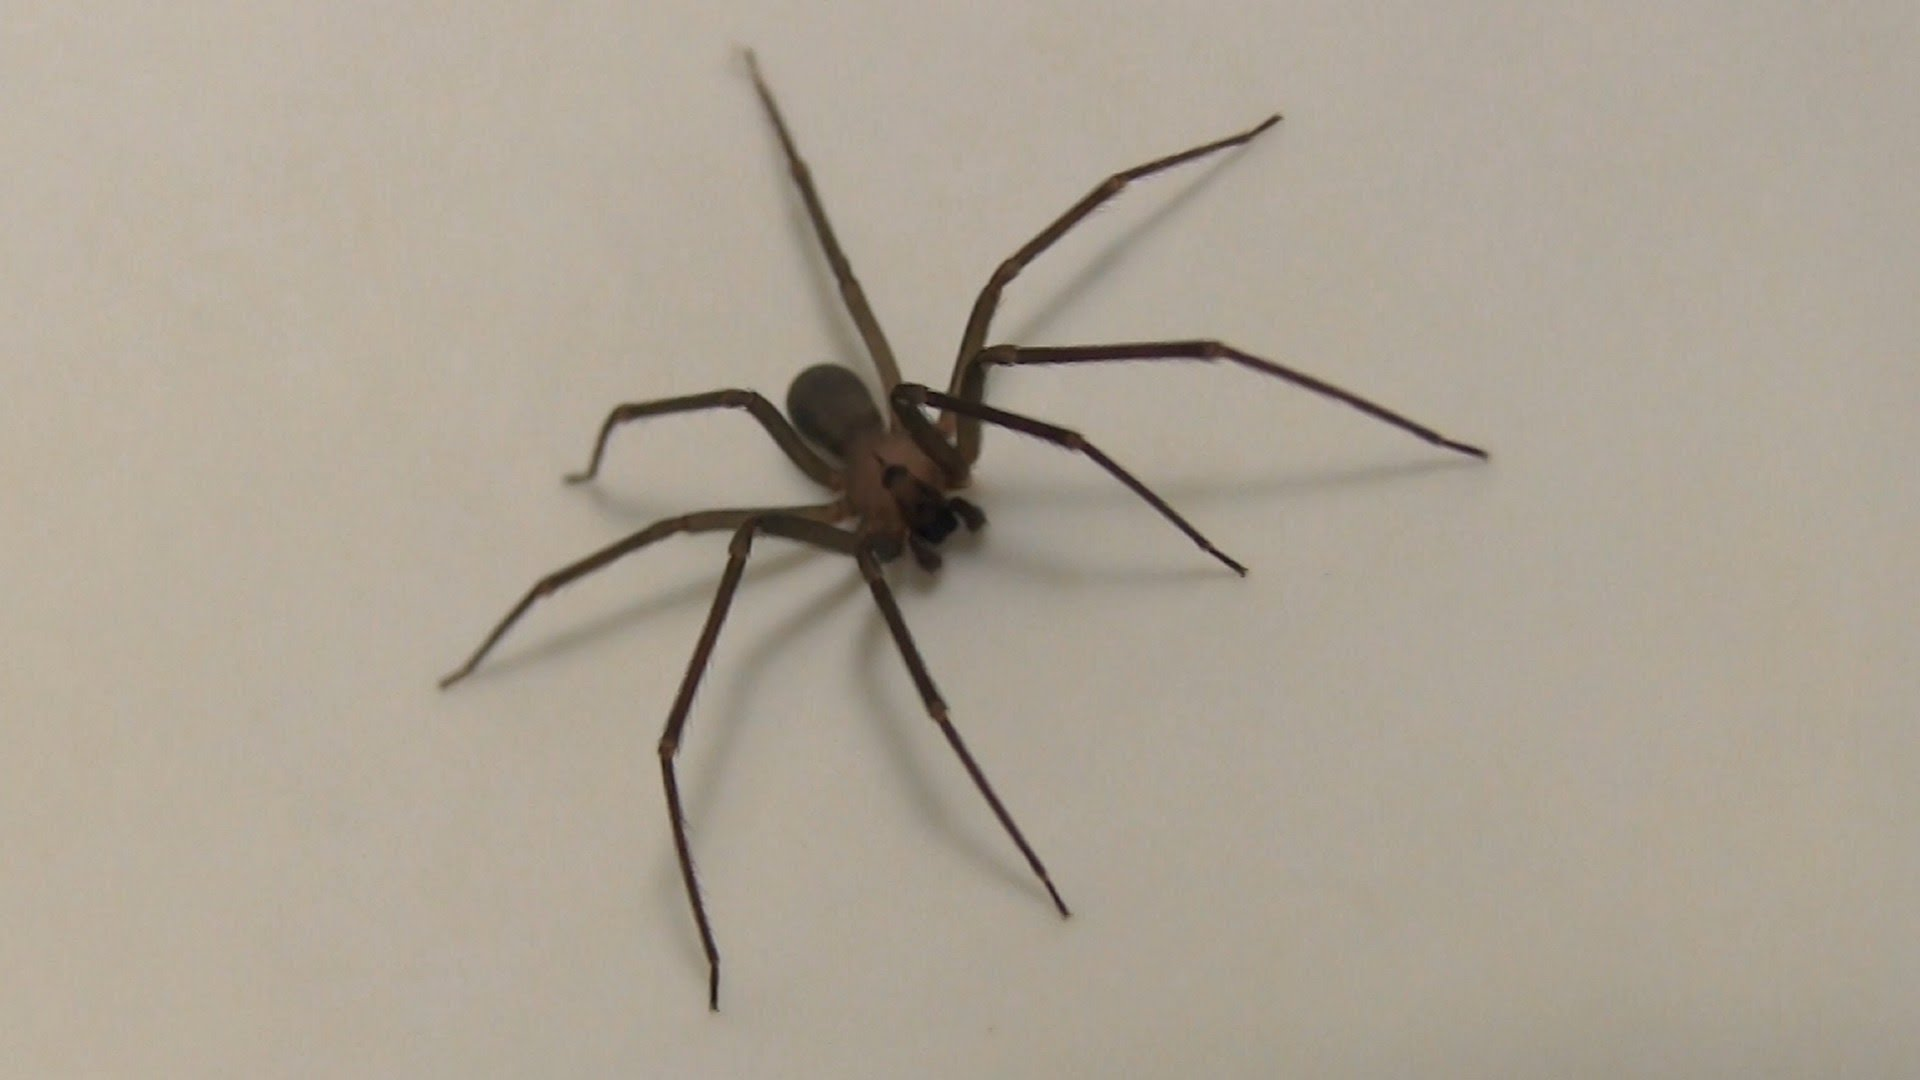 Symptoms of brown recluse spider bite